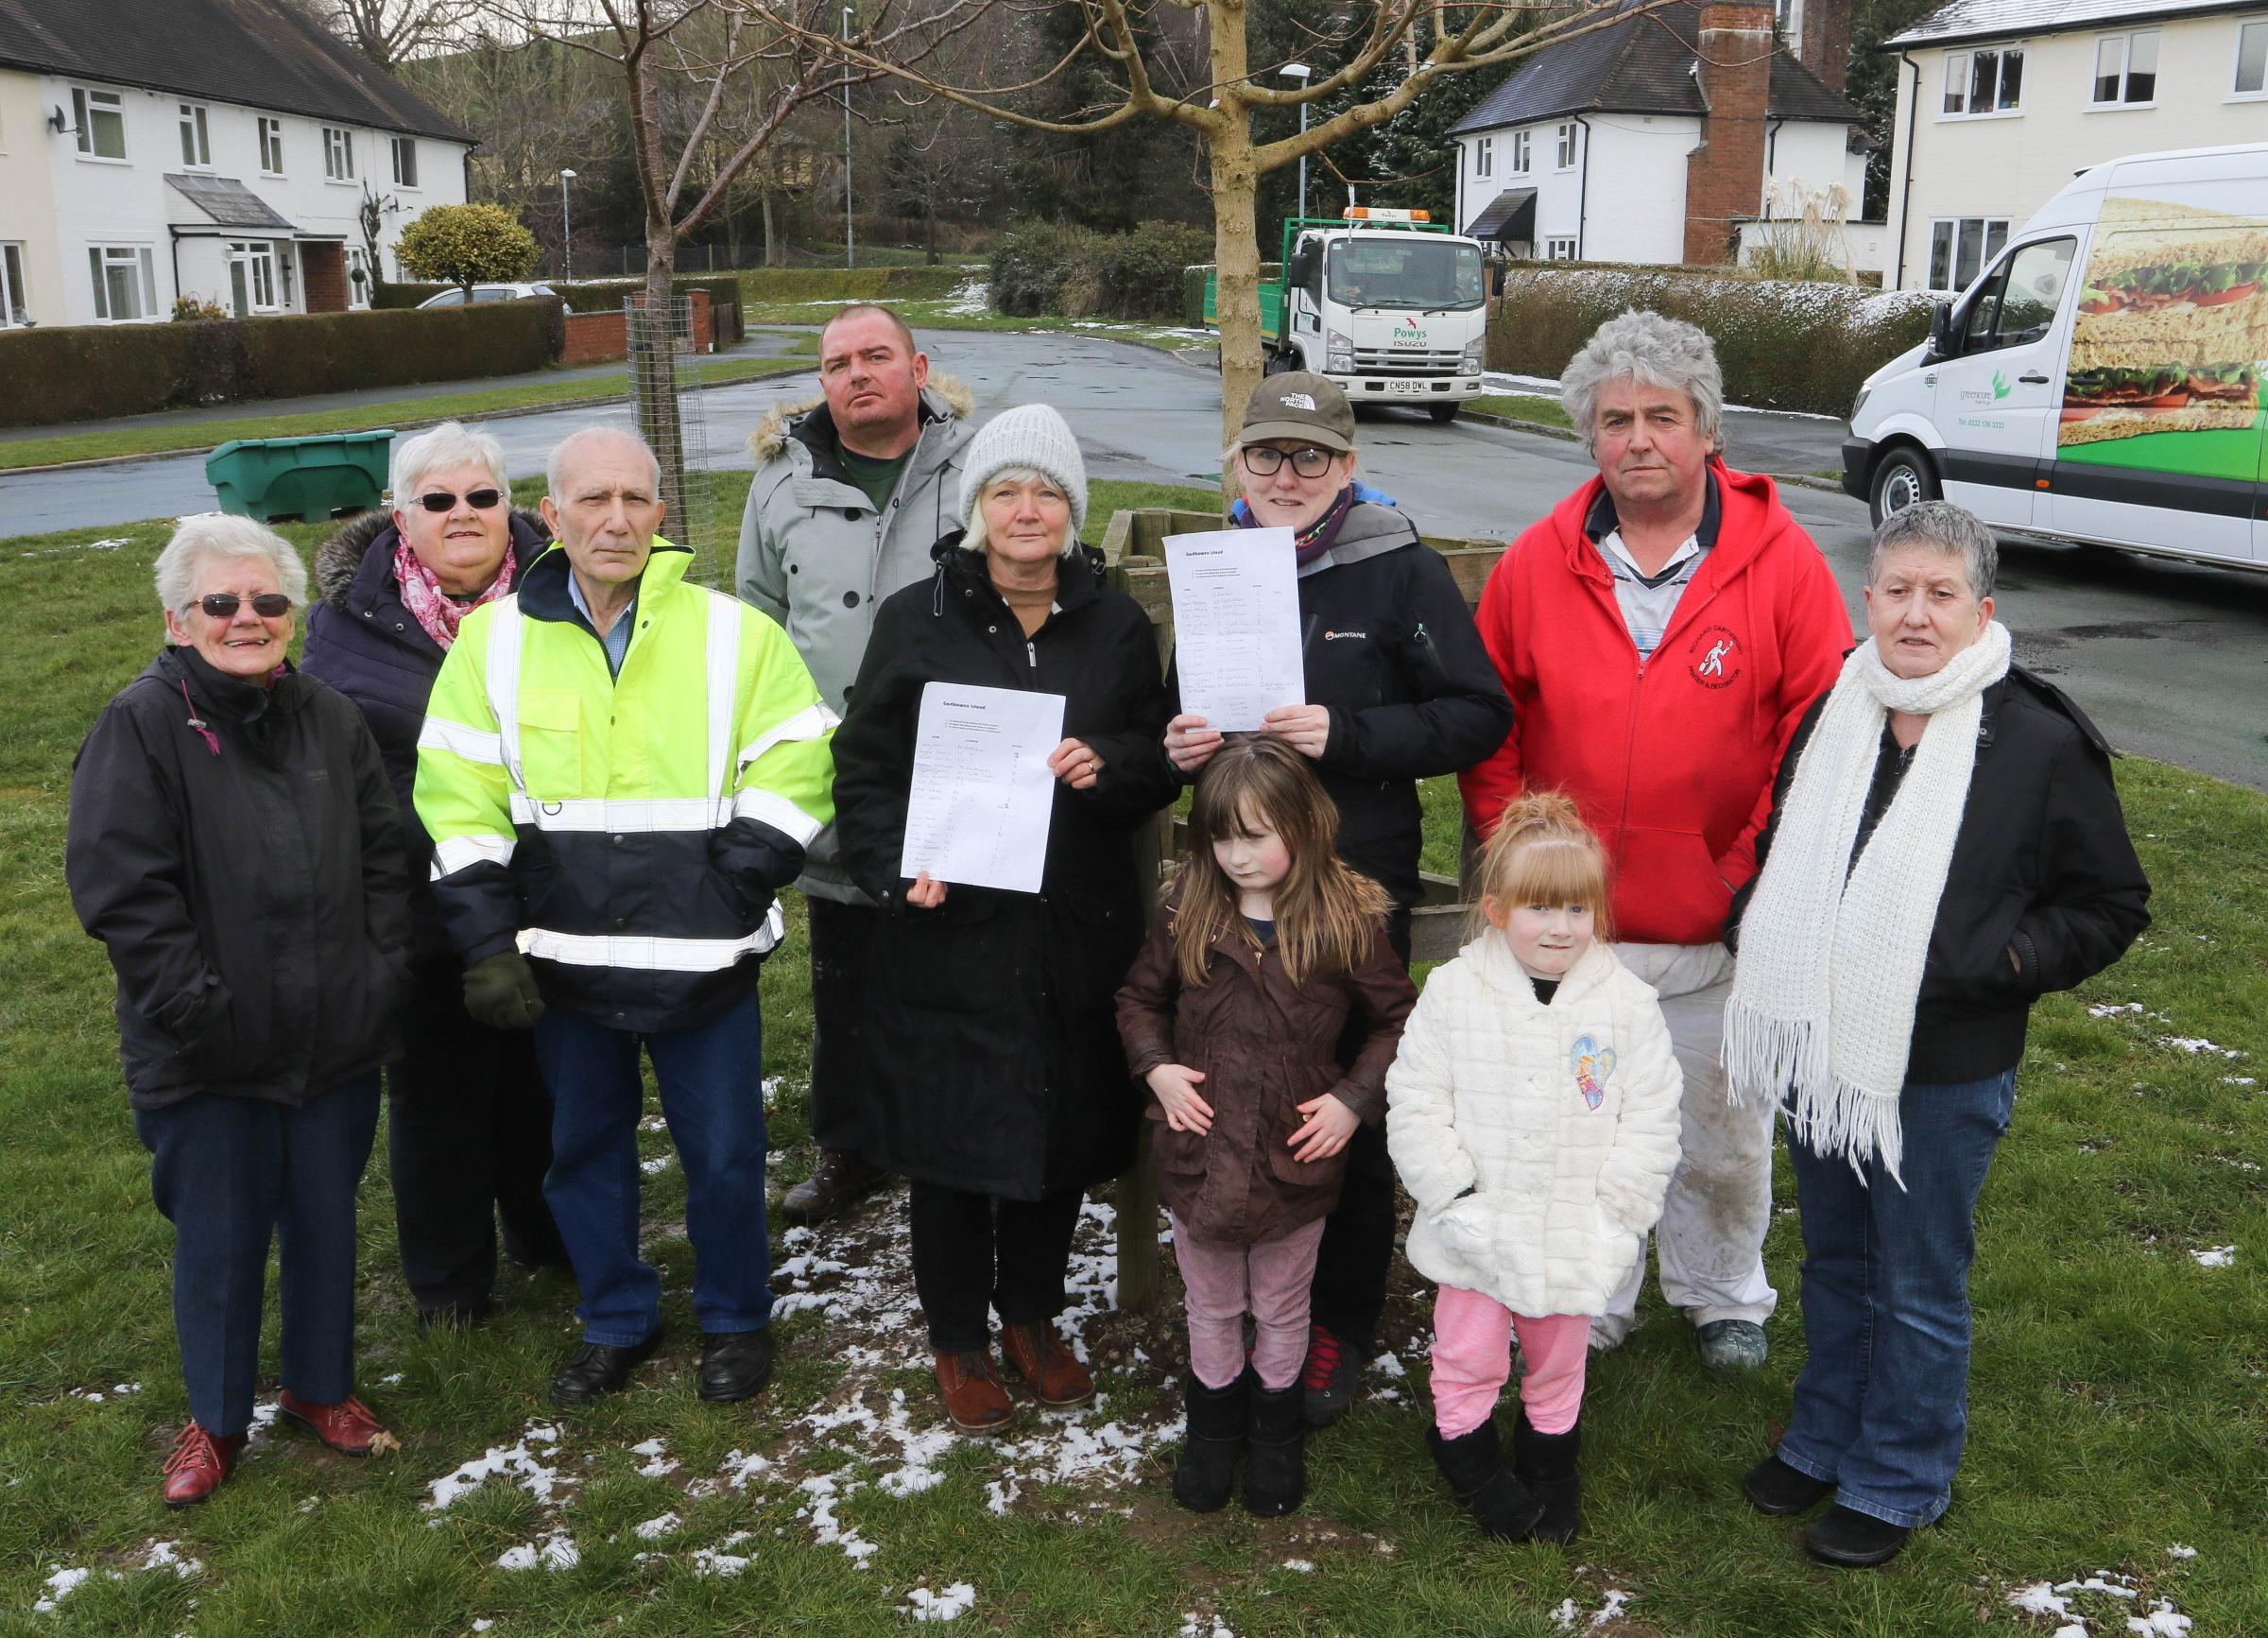 PB117-2018-4.Roundabout cylcle lane protestors, Garthowen Estate Newtown.pictured are local residents with fron centre left to right, Cllr Susan Hill and Kelly Leah (organiser) with the petition.Picture by Phil Blagg.PB117-2018-4.